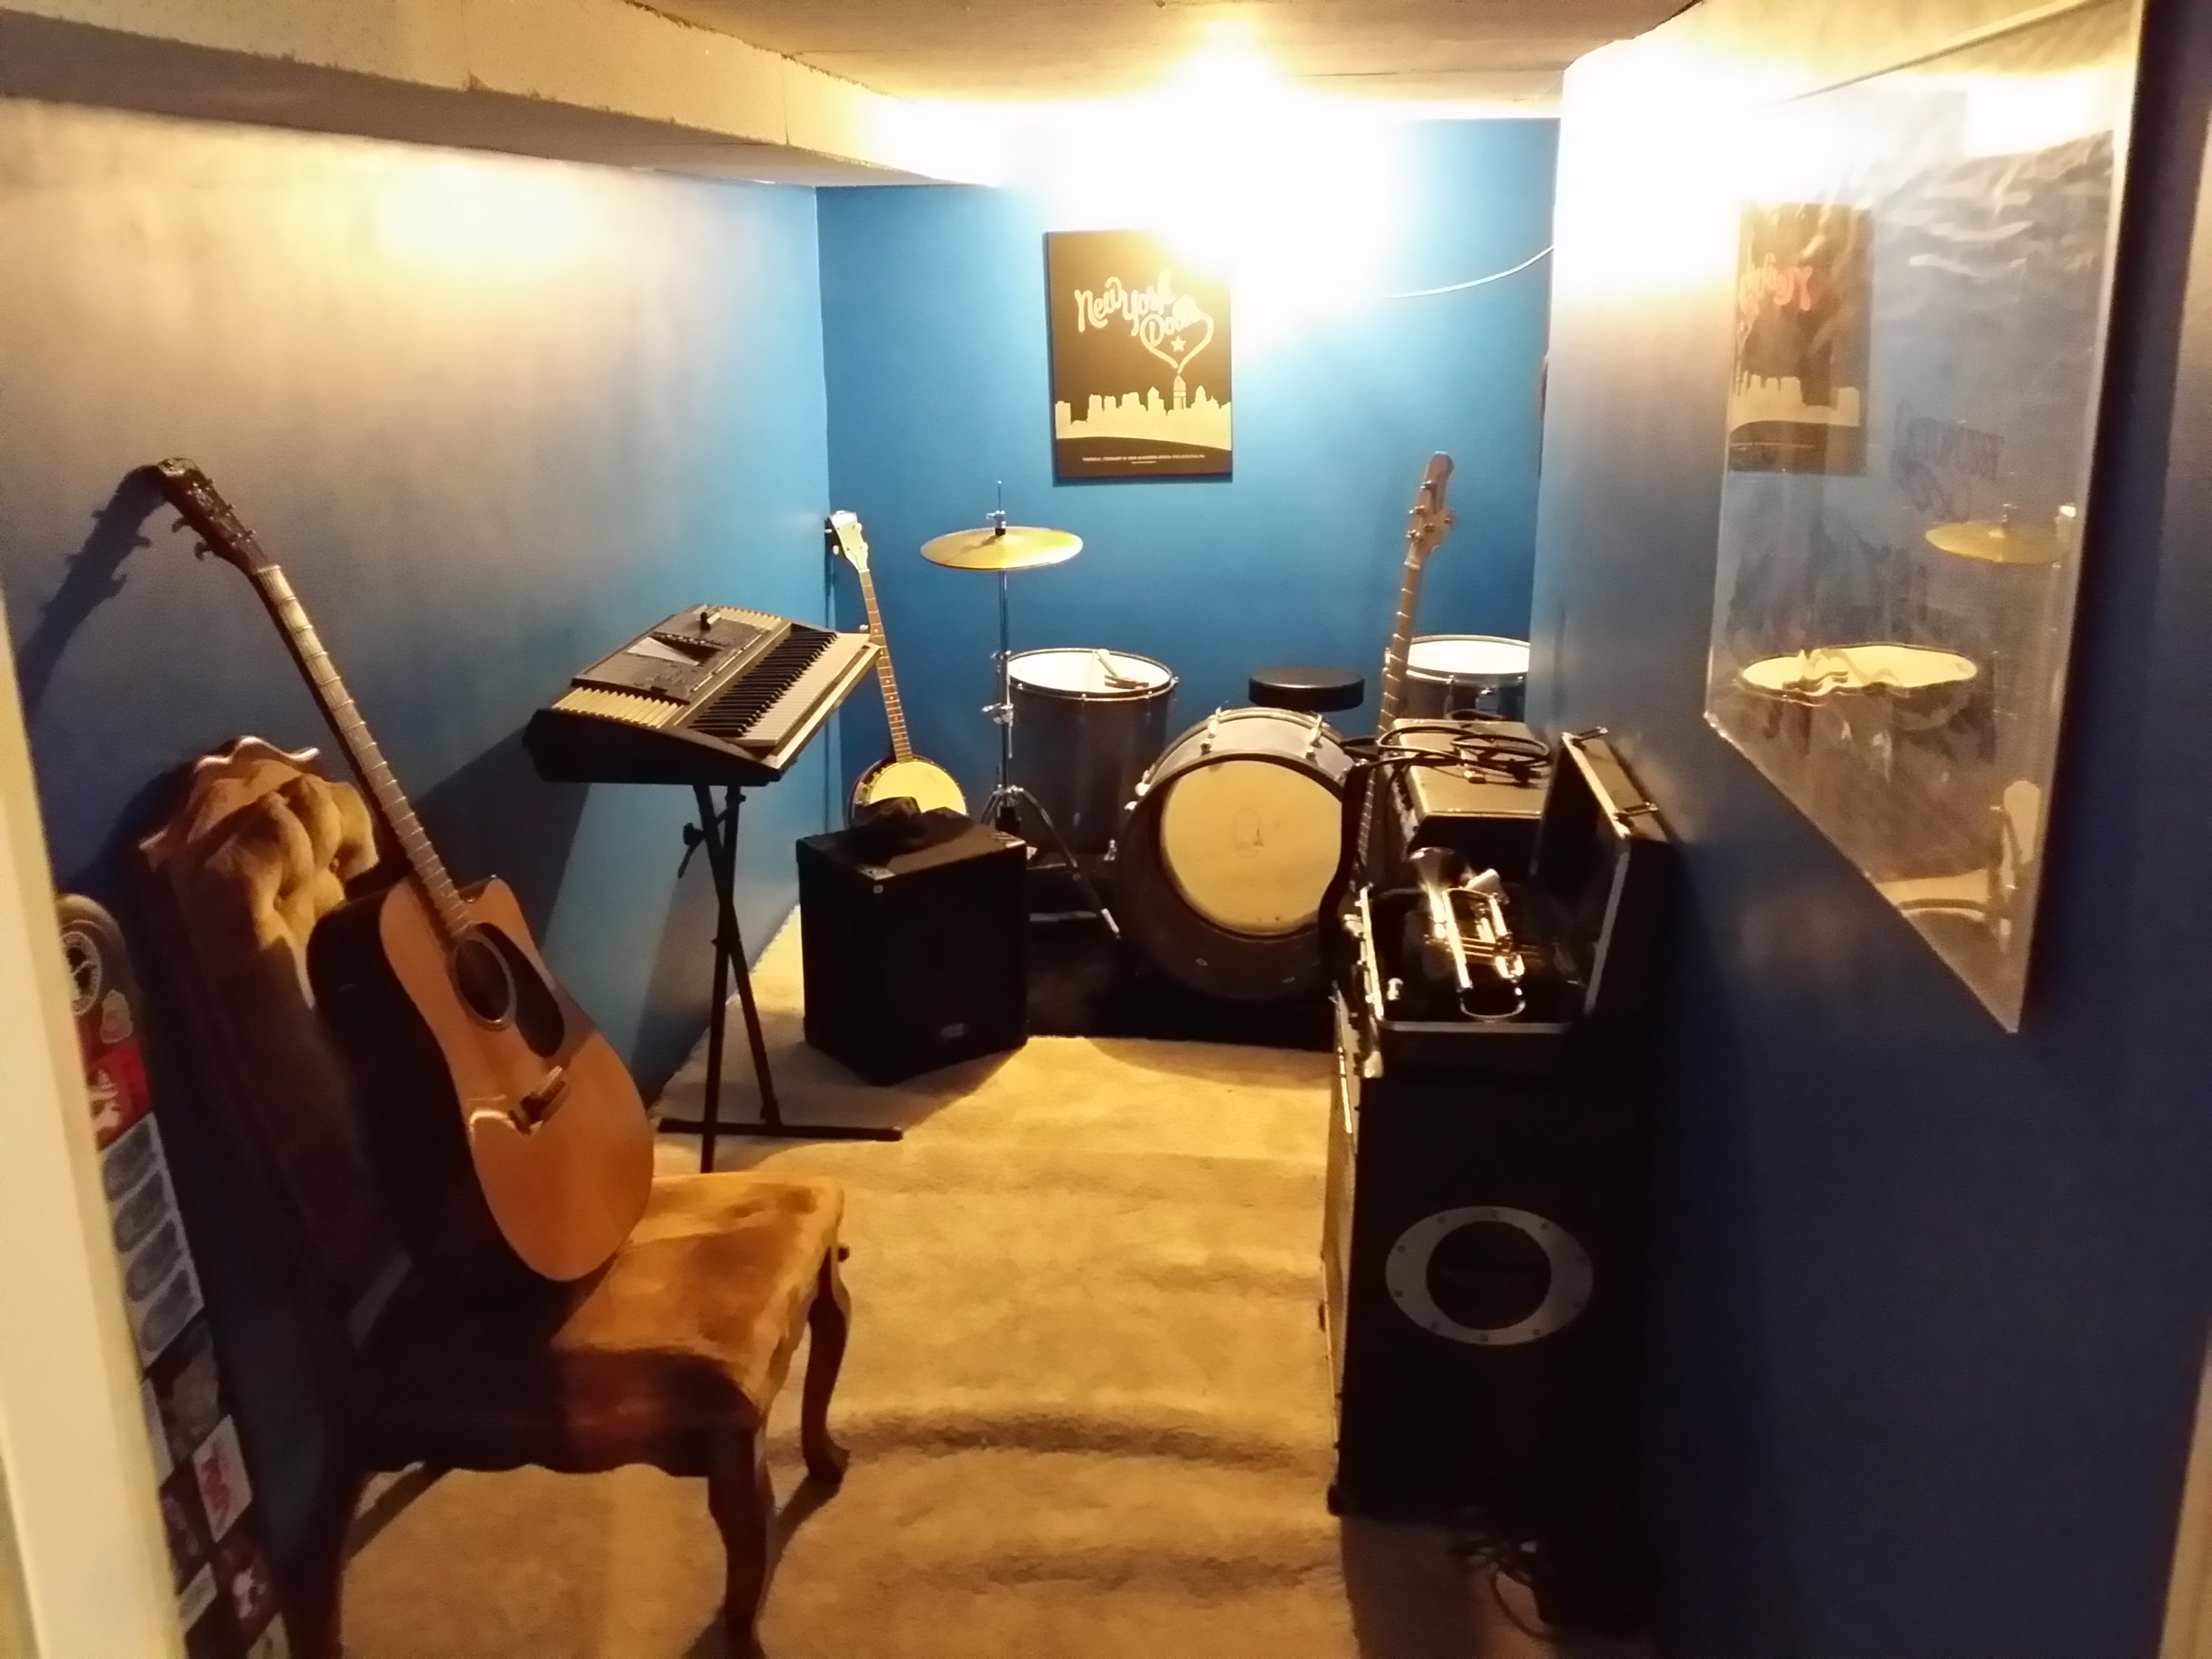 Remarkable How To Build Your Own Soundproof Rehearsal Room When You Have No Largest Home Design Picture Inspirations Pitcheantrous